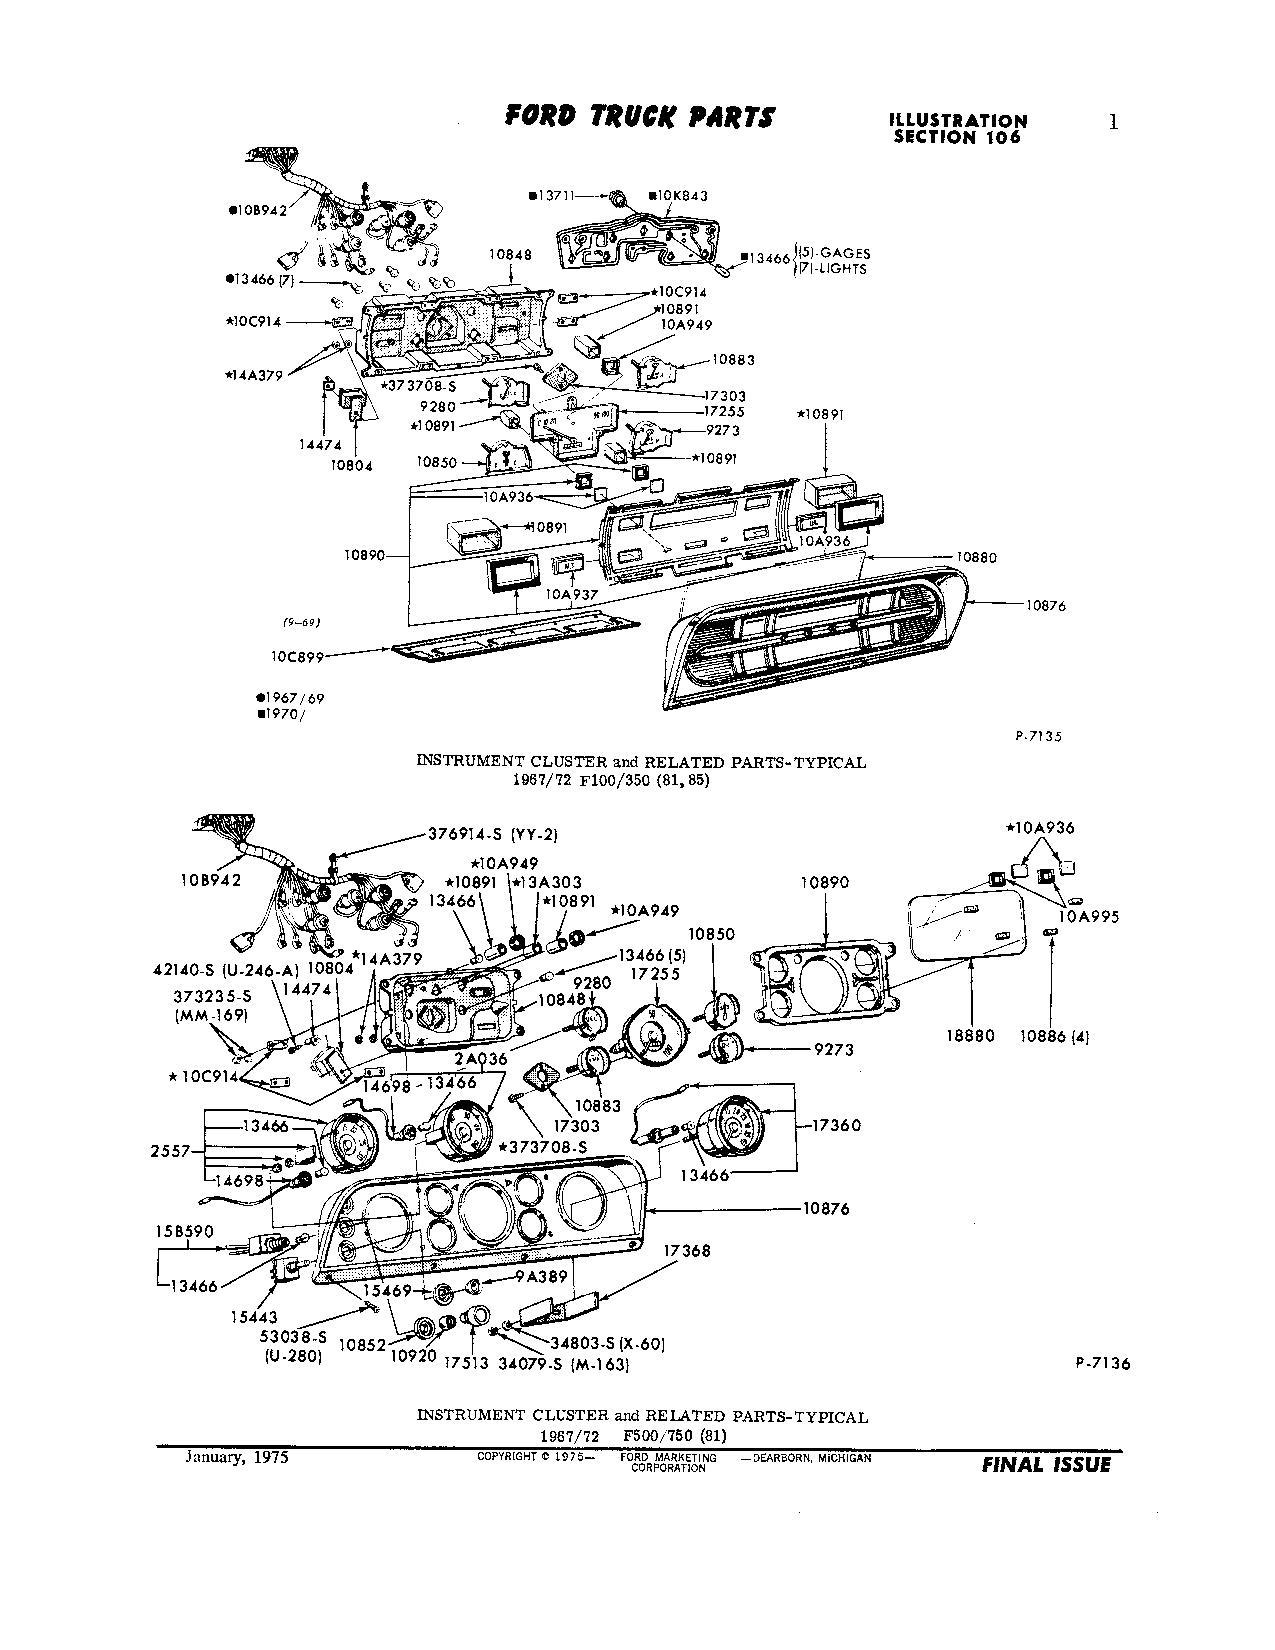 1971 F250 gauge picture & Information - Ford Truck ...